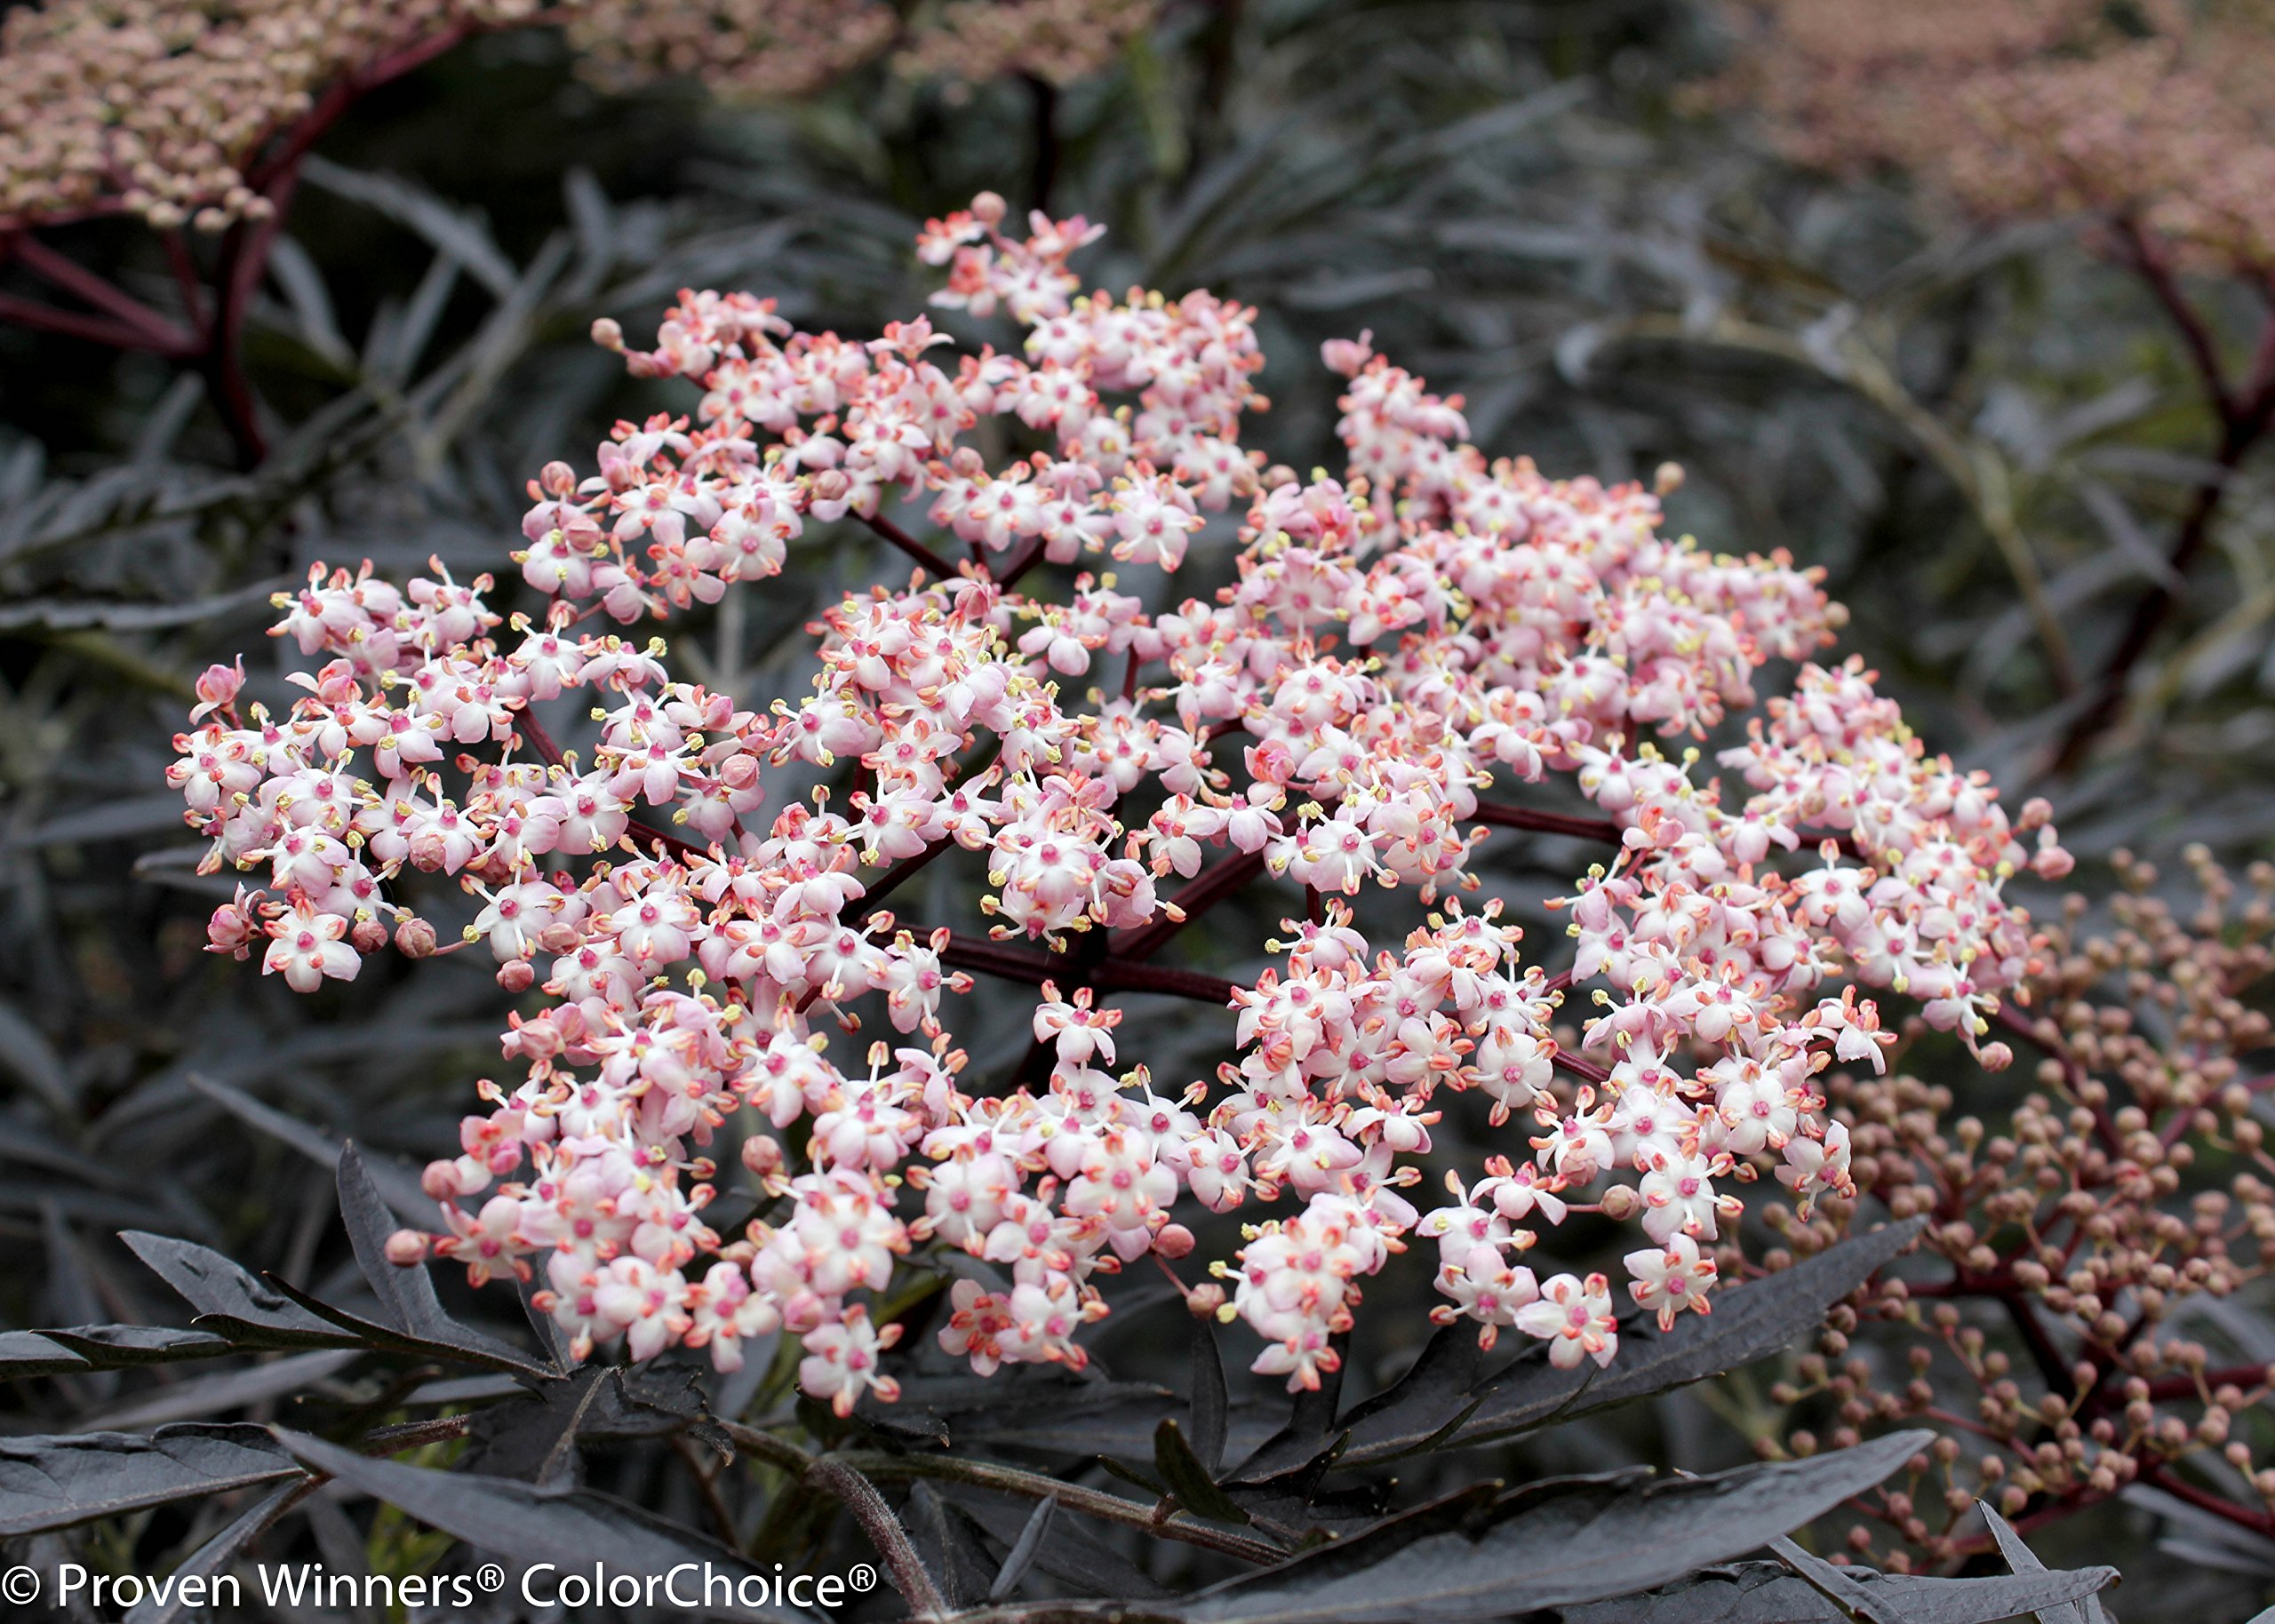 Black Lace Elderberry (Sambucus) Live Shrub, Pink Flowers, 4.5 in. Quart by Proven Winners (Image #8)